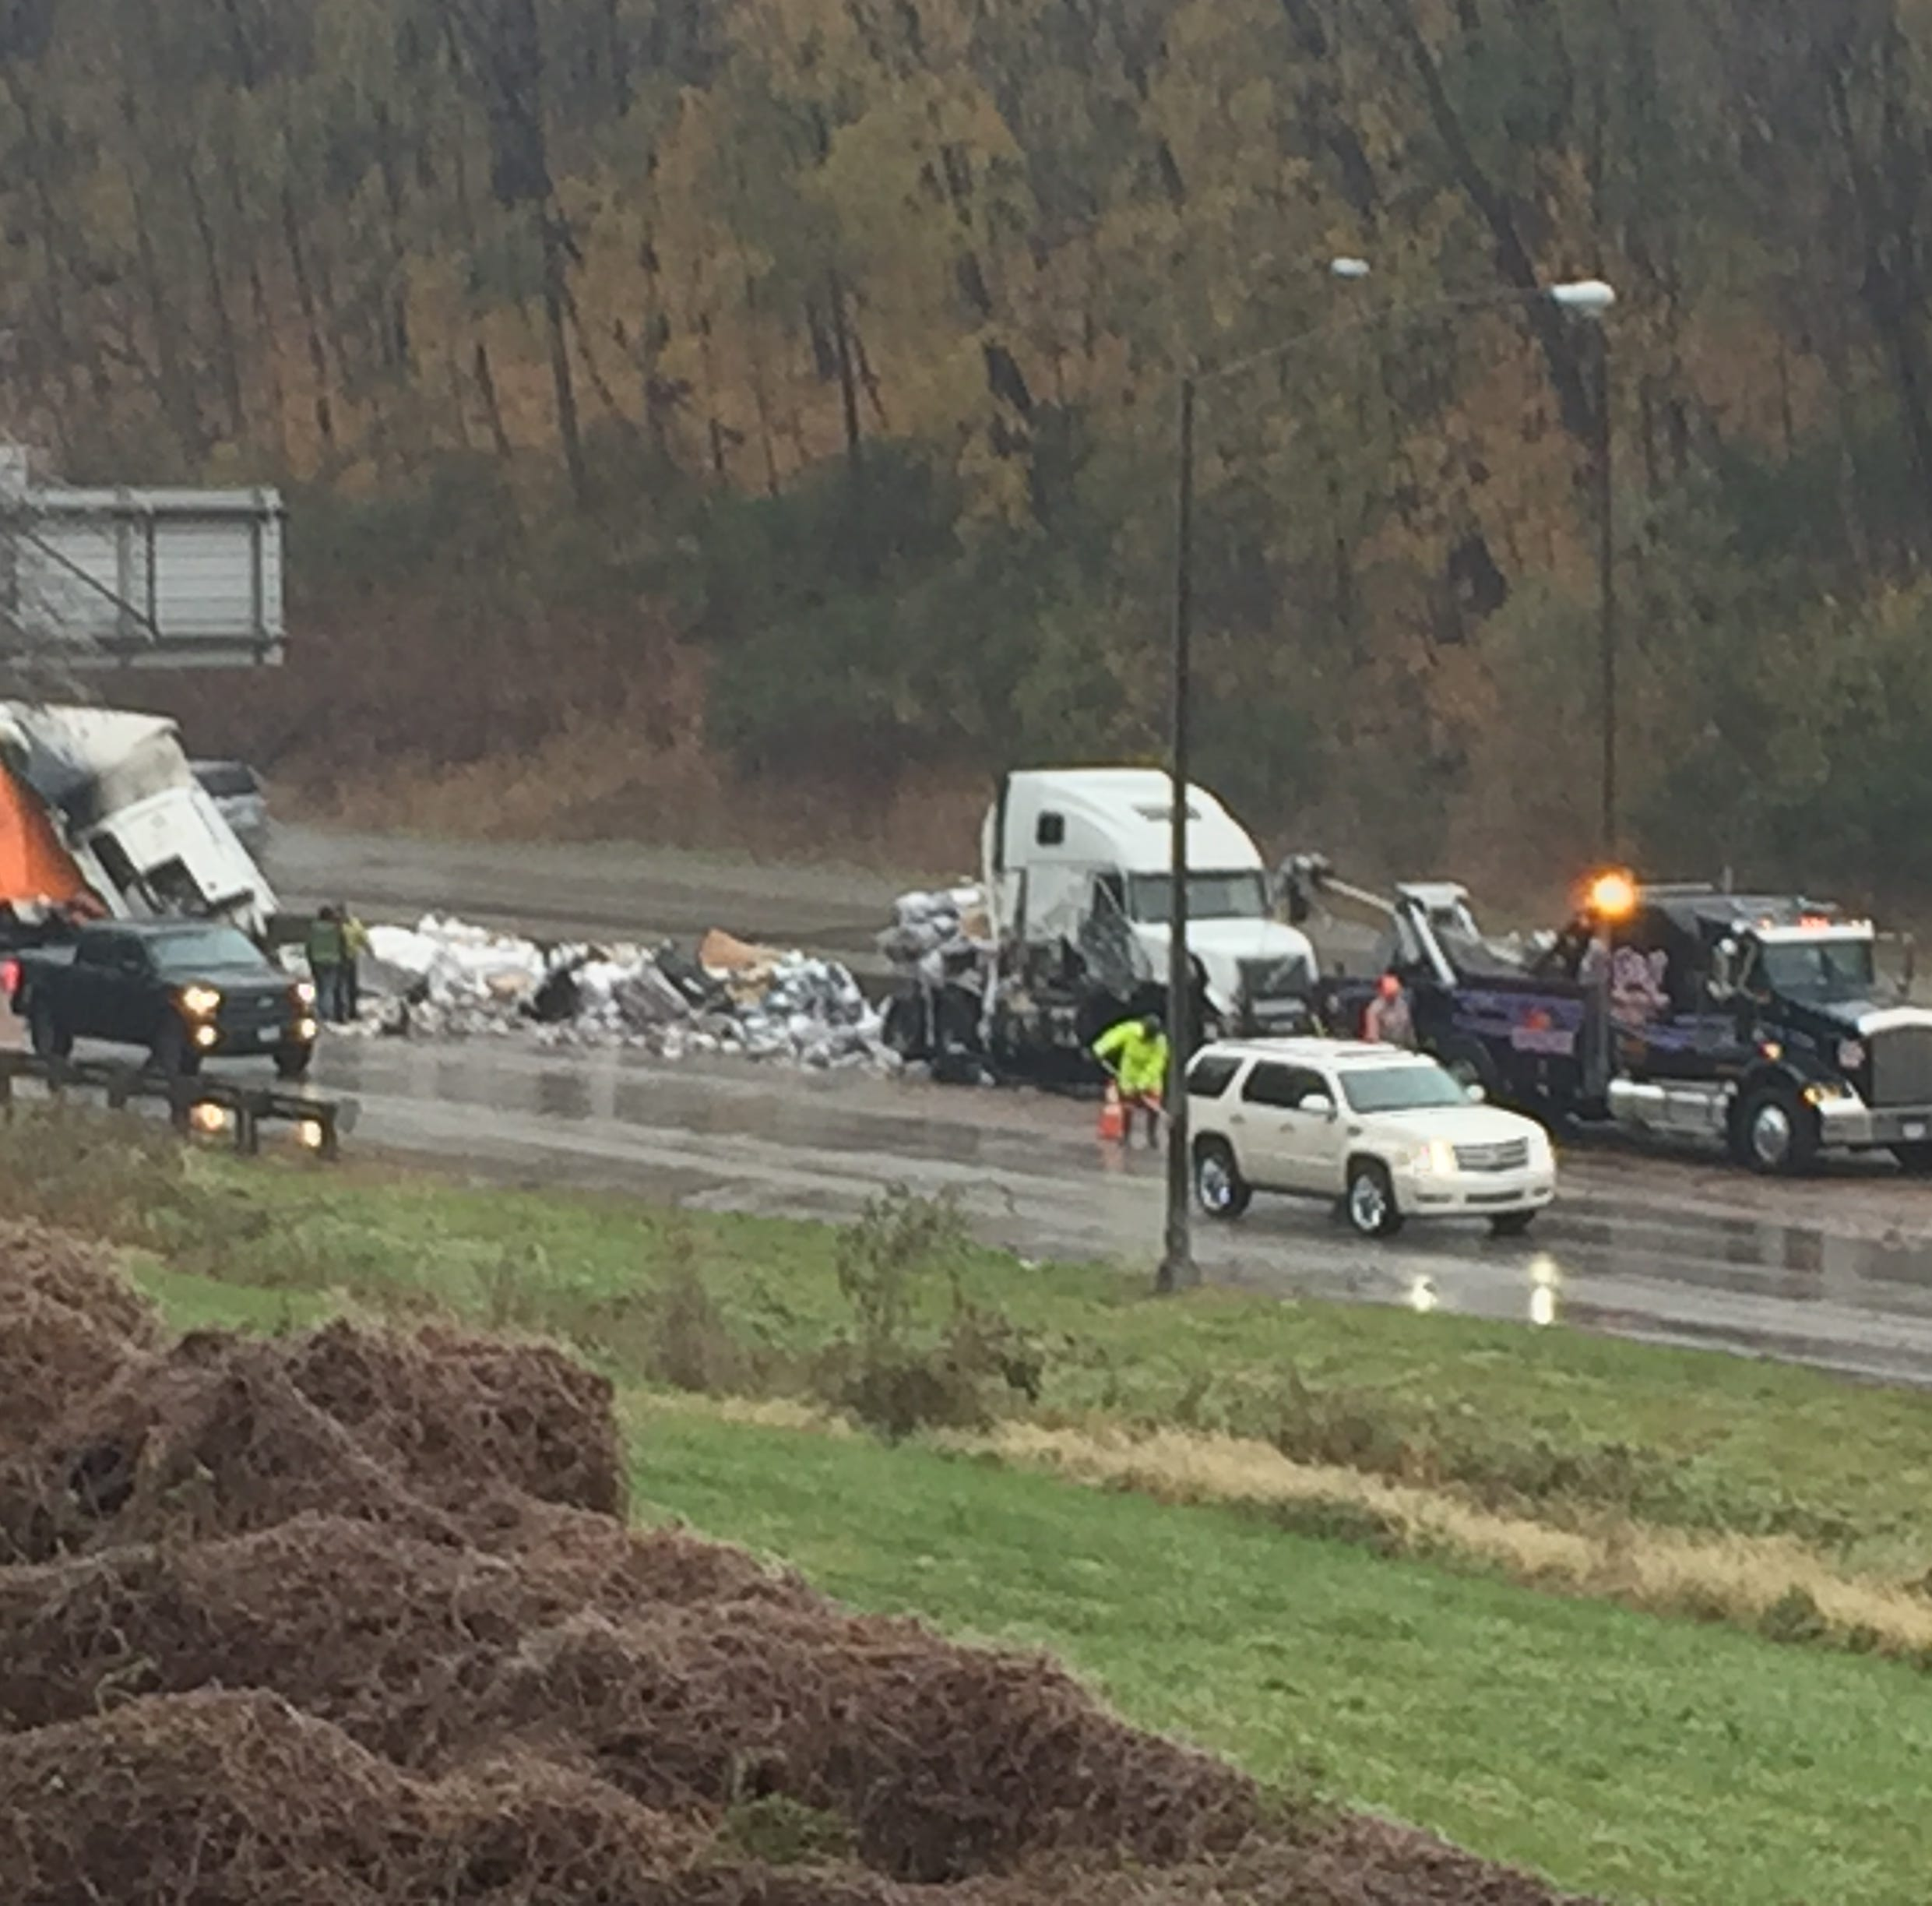 One lane of I-70 reopened following fatal accident